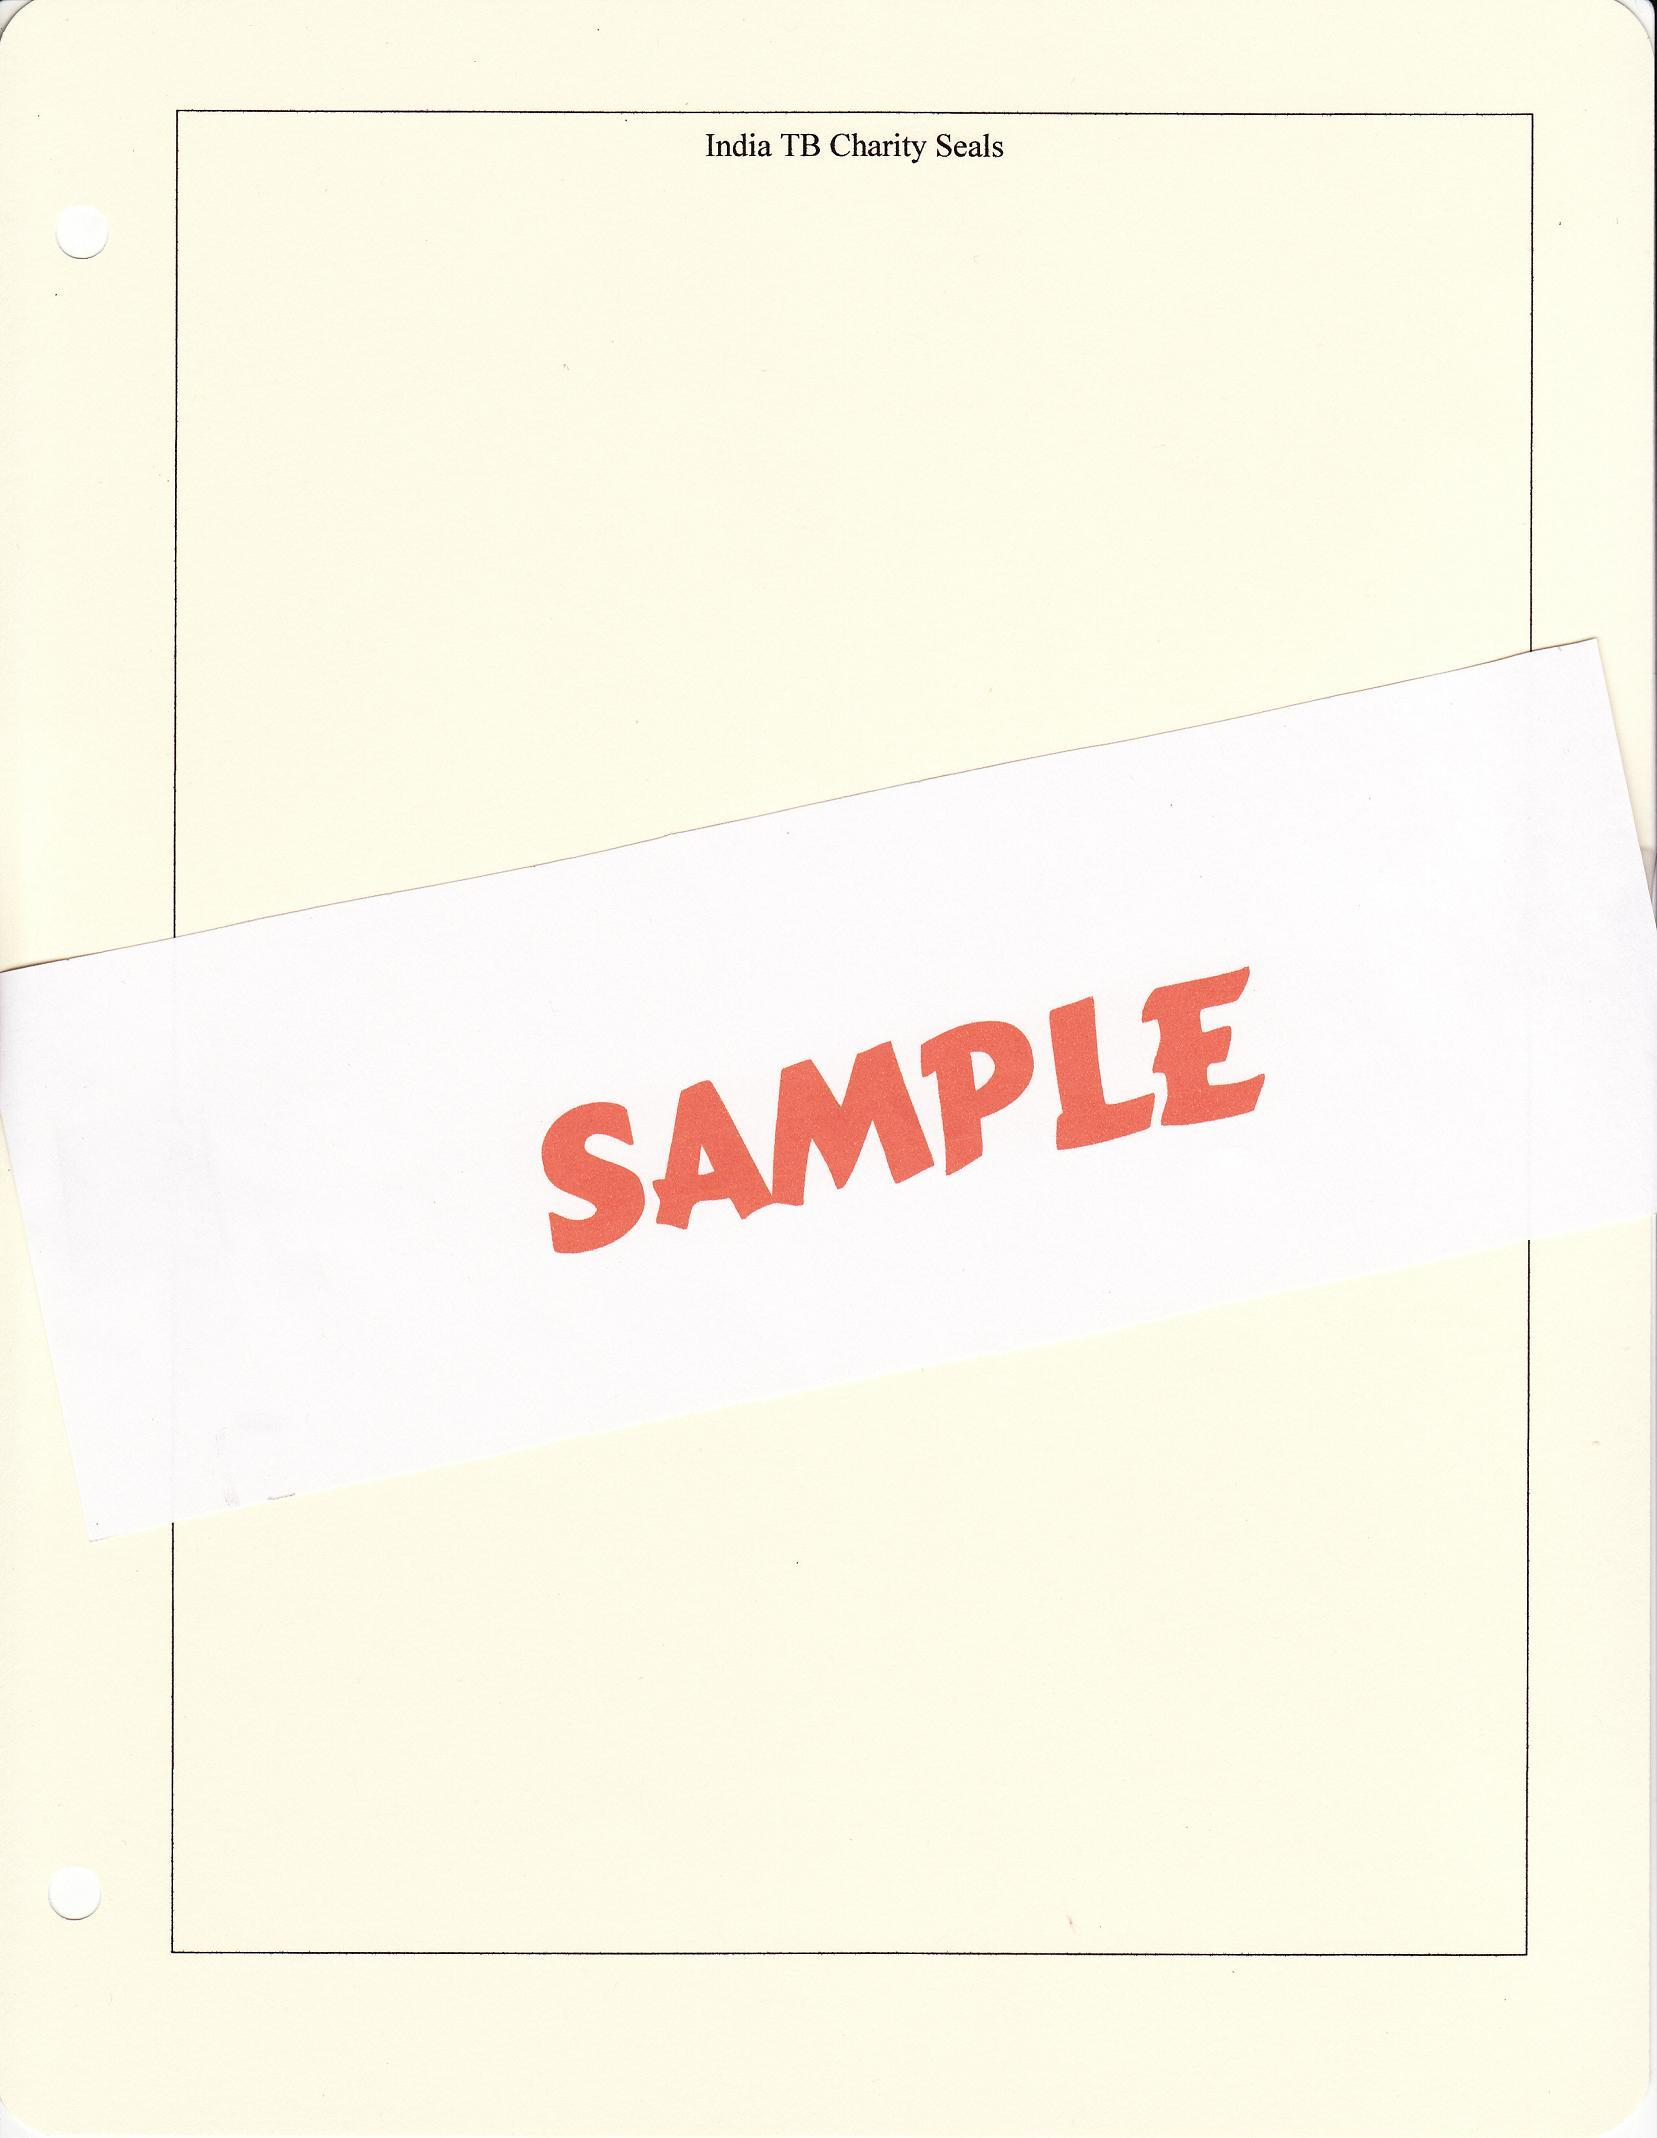 India TB Charity Seal Album Pages, blank pages with title and border